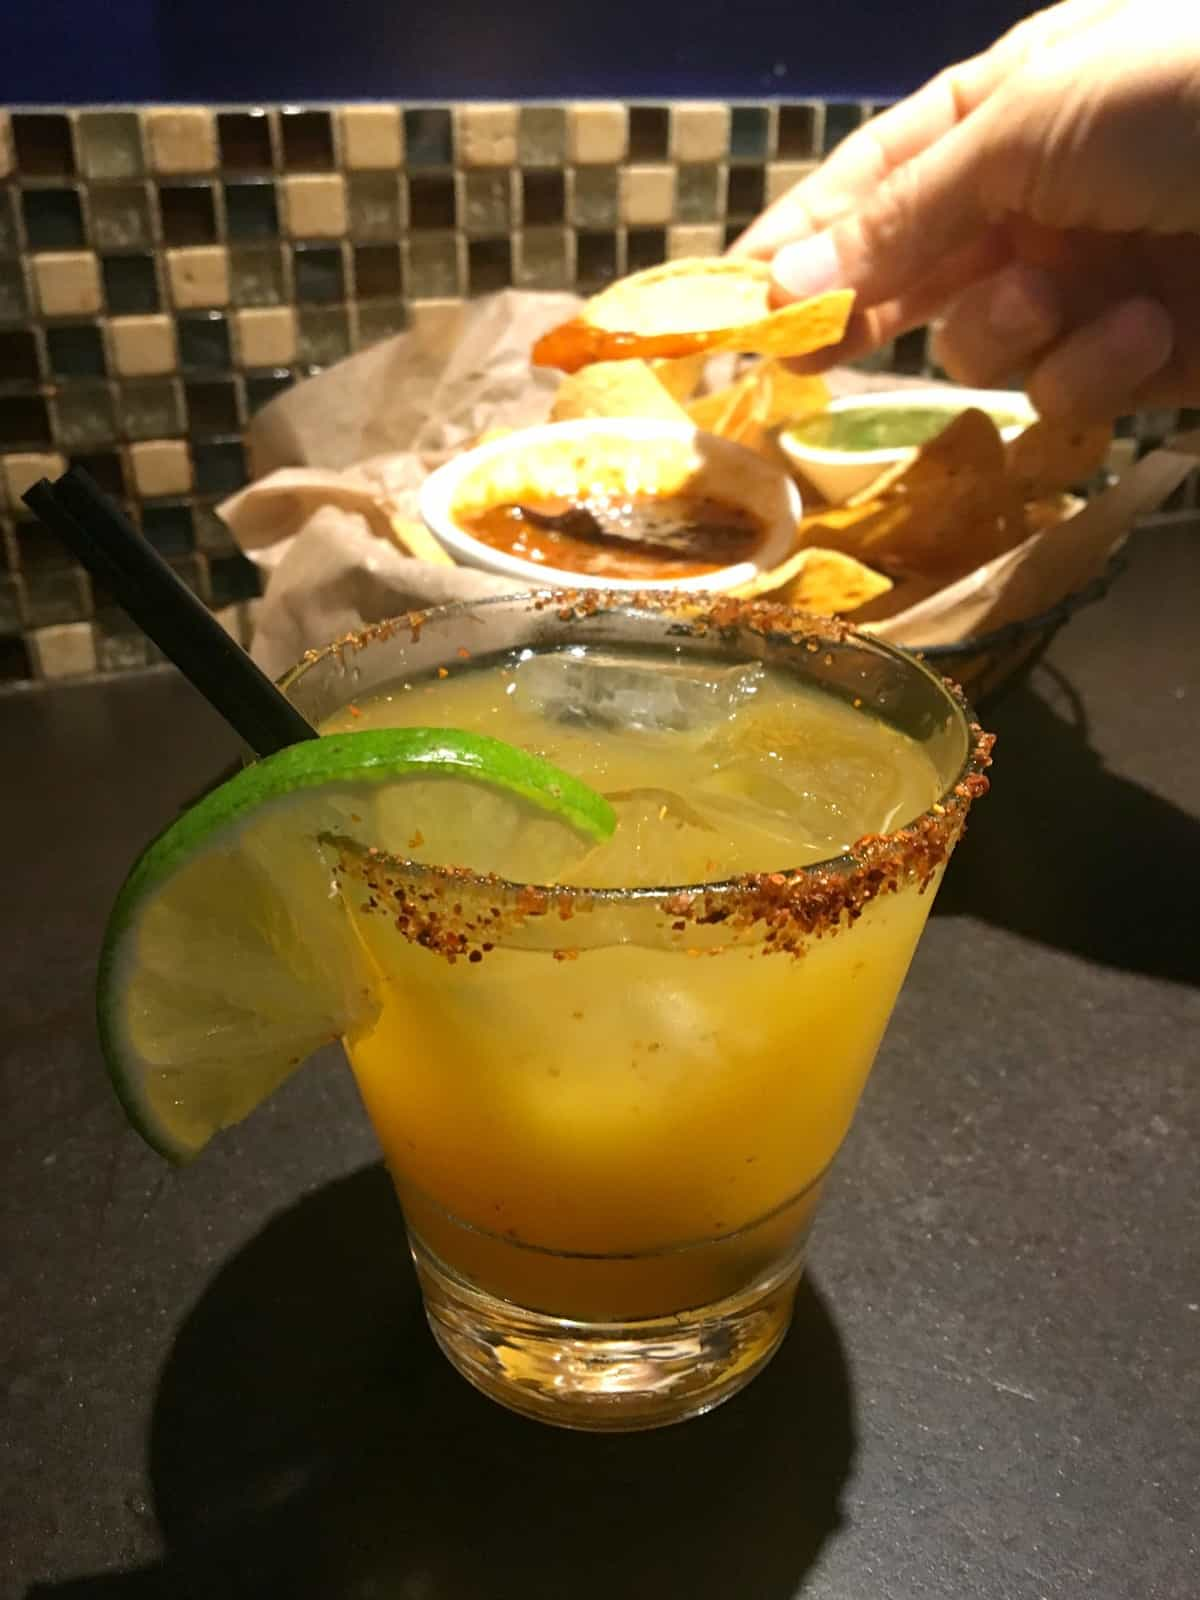 A delicious margarita and chips and salsa from Chicago